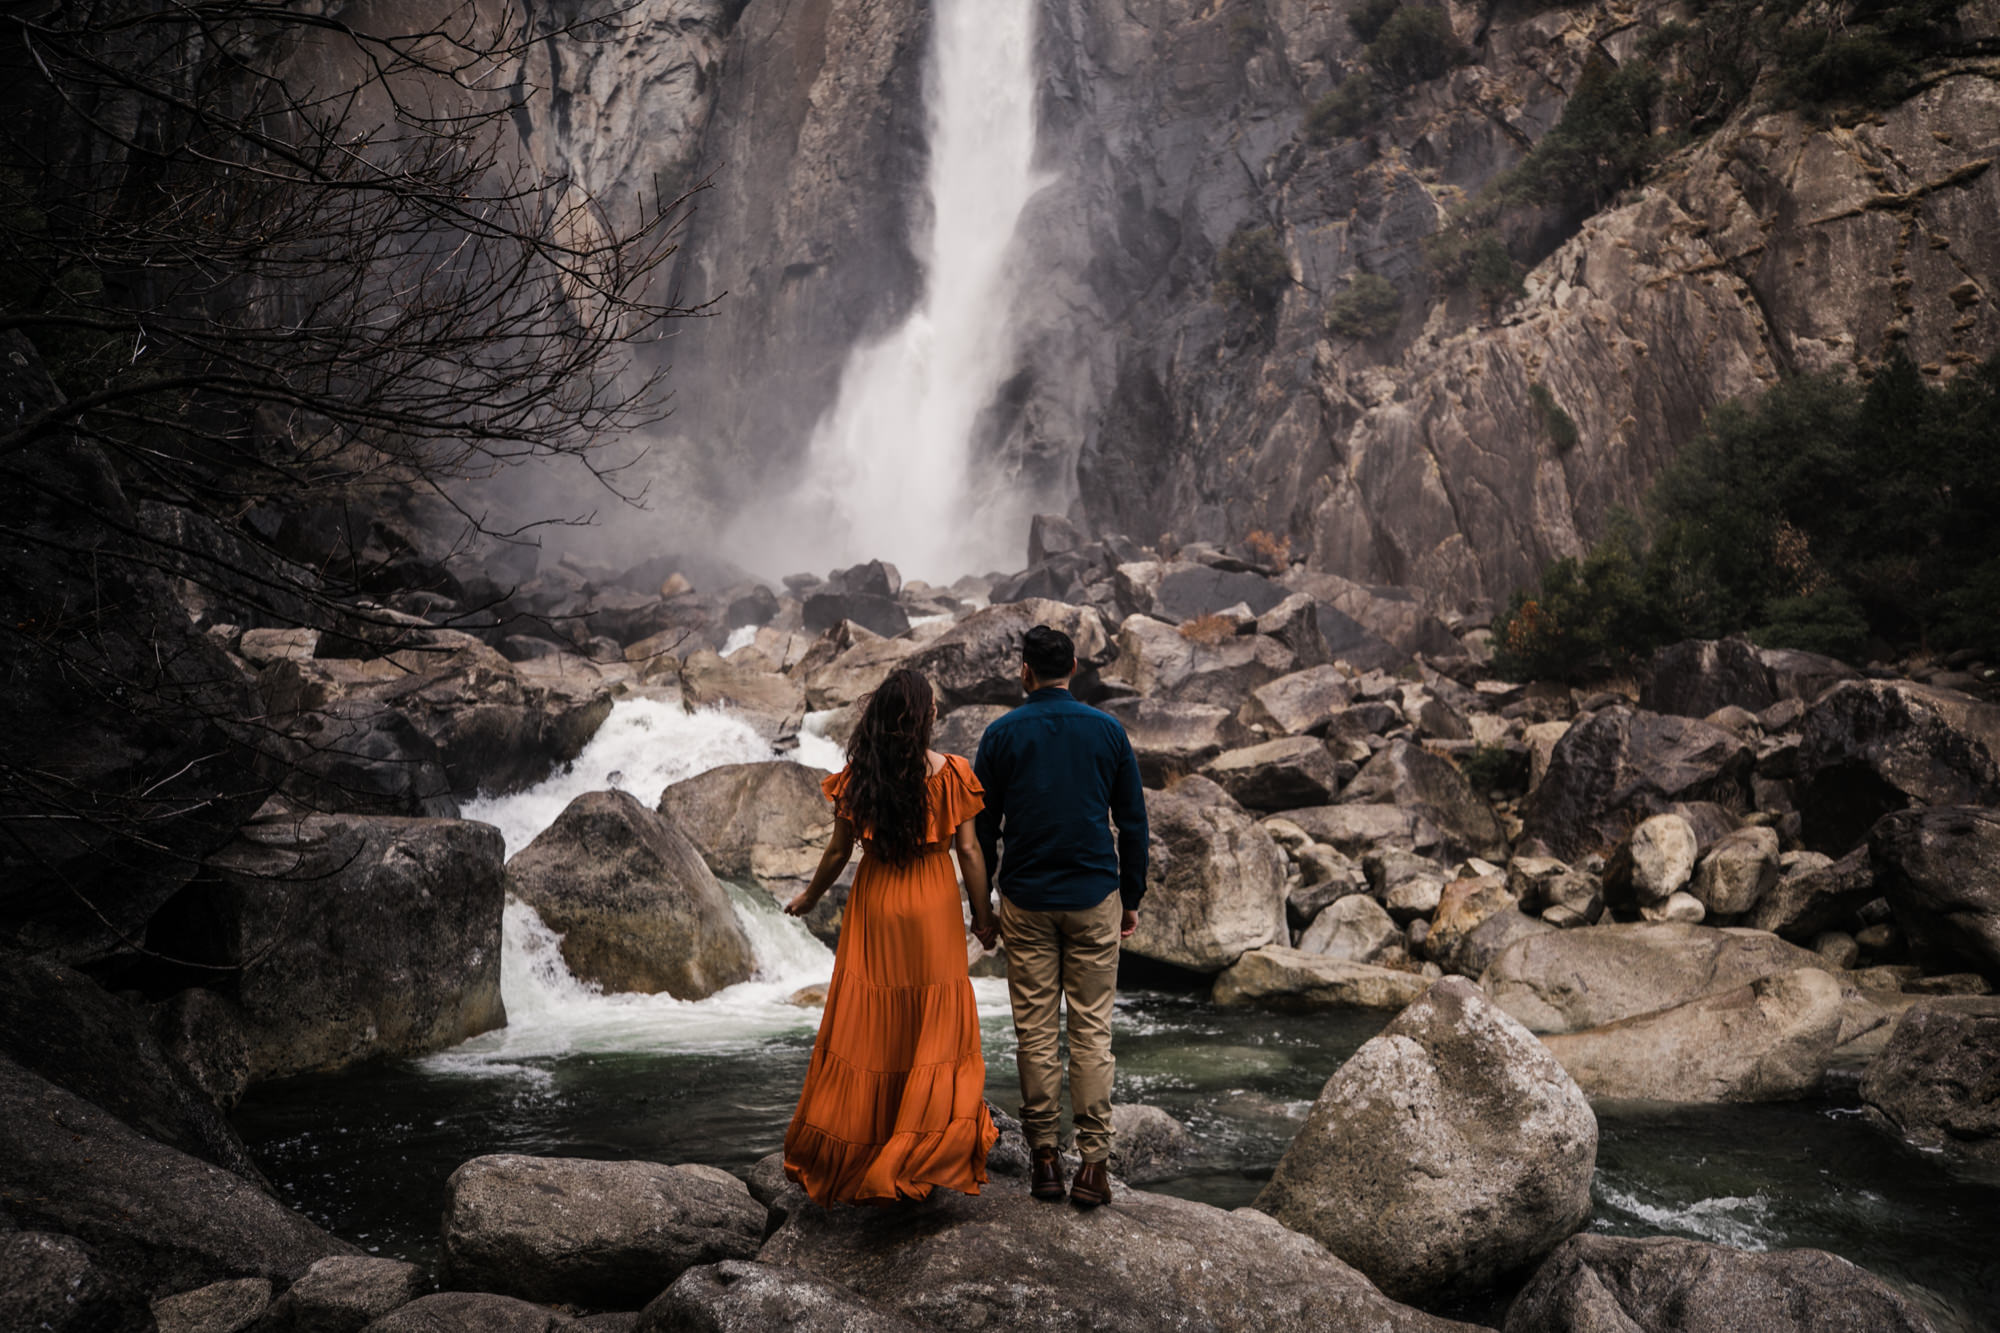 waterfalls + meadows engagement session in yosemite national park | adventurous elopement photographer | the hearnes adventure photography | www.thehearnes.com